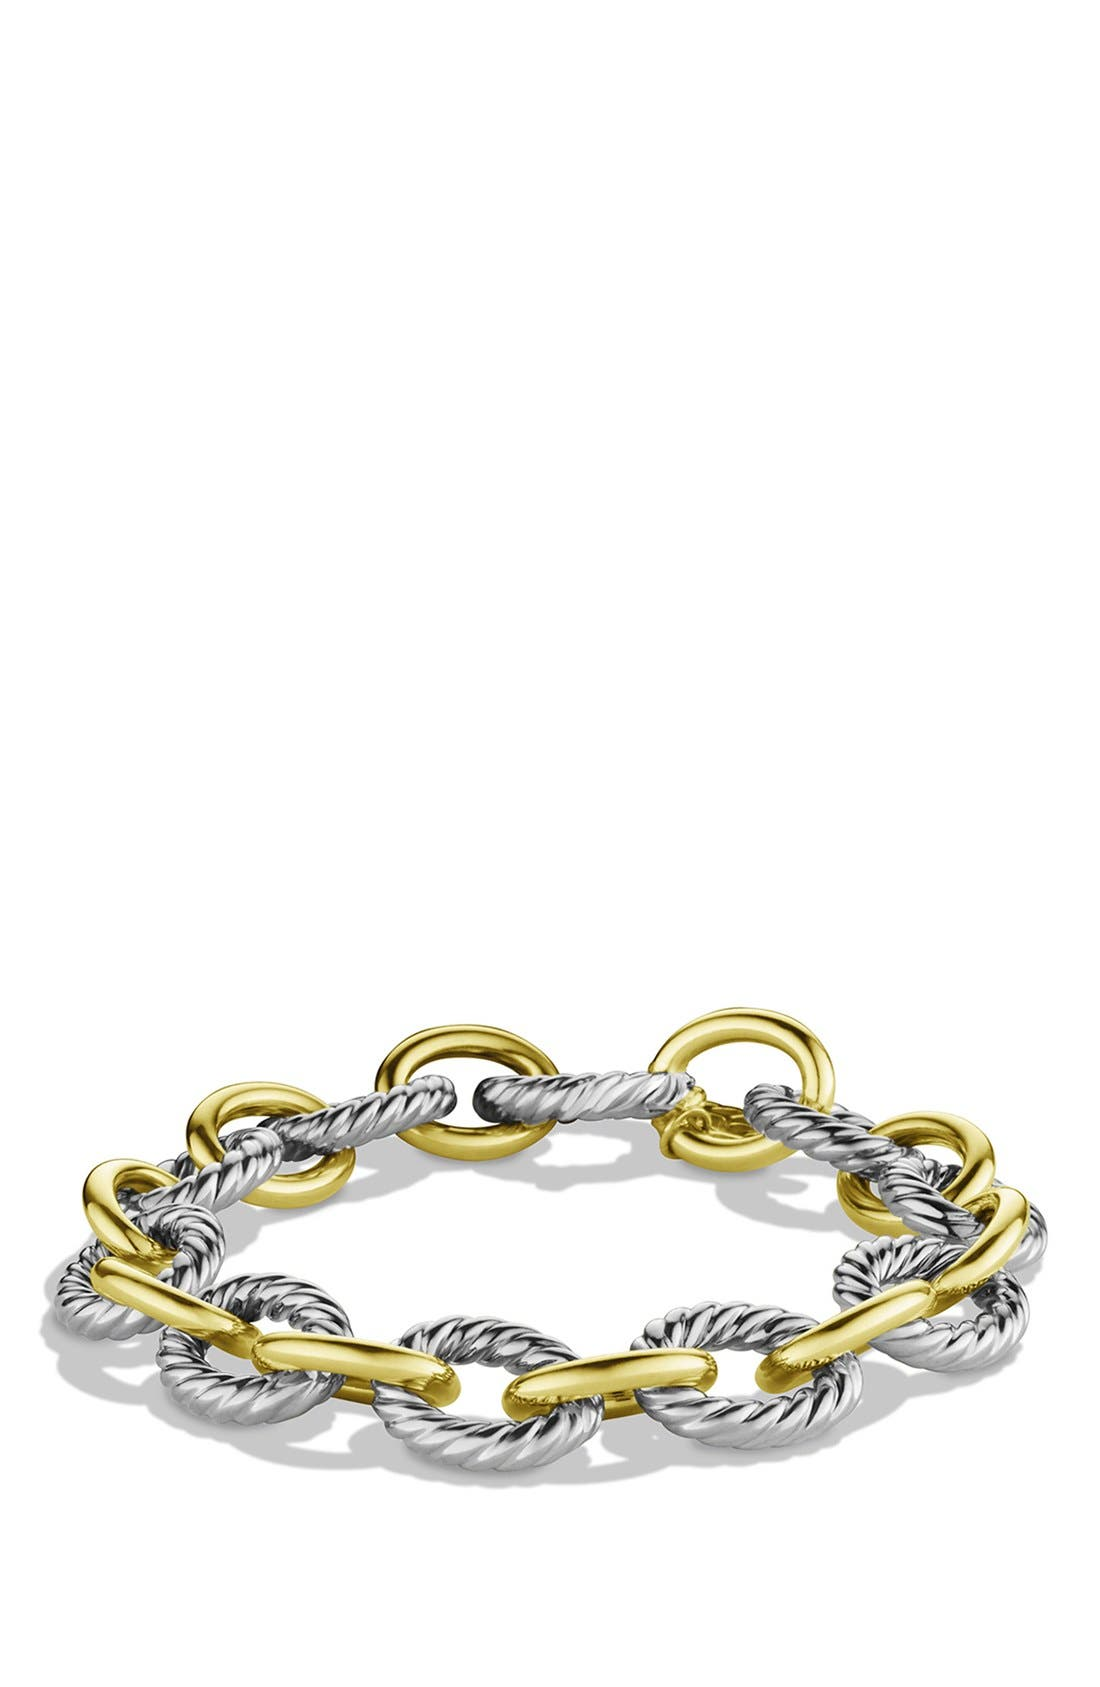 David Yurman 'Oval' Large Link Bracelet with Gold